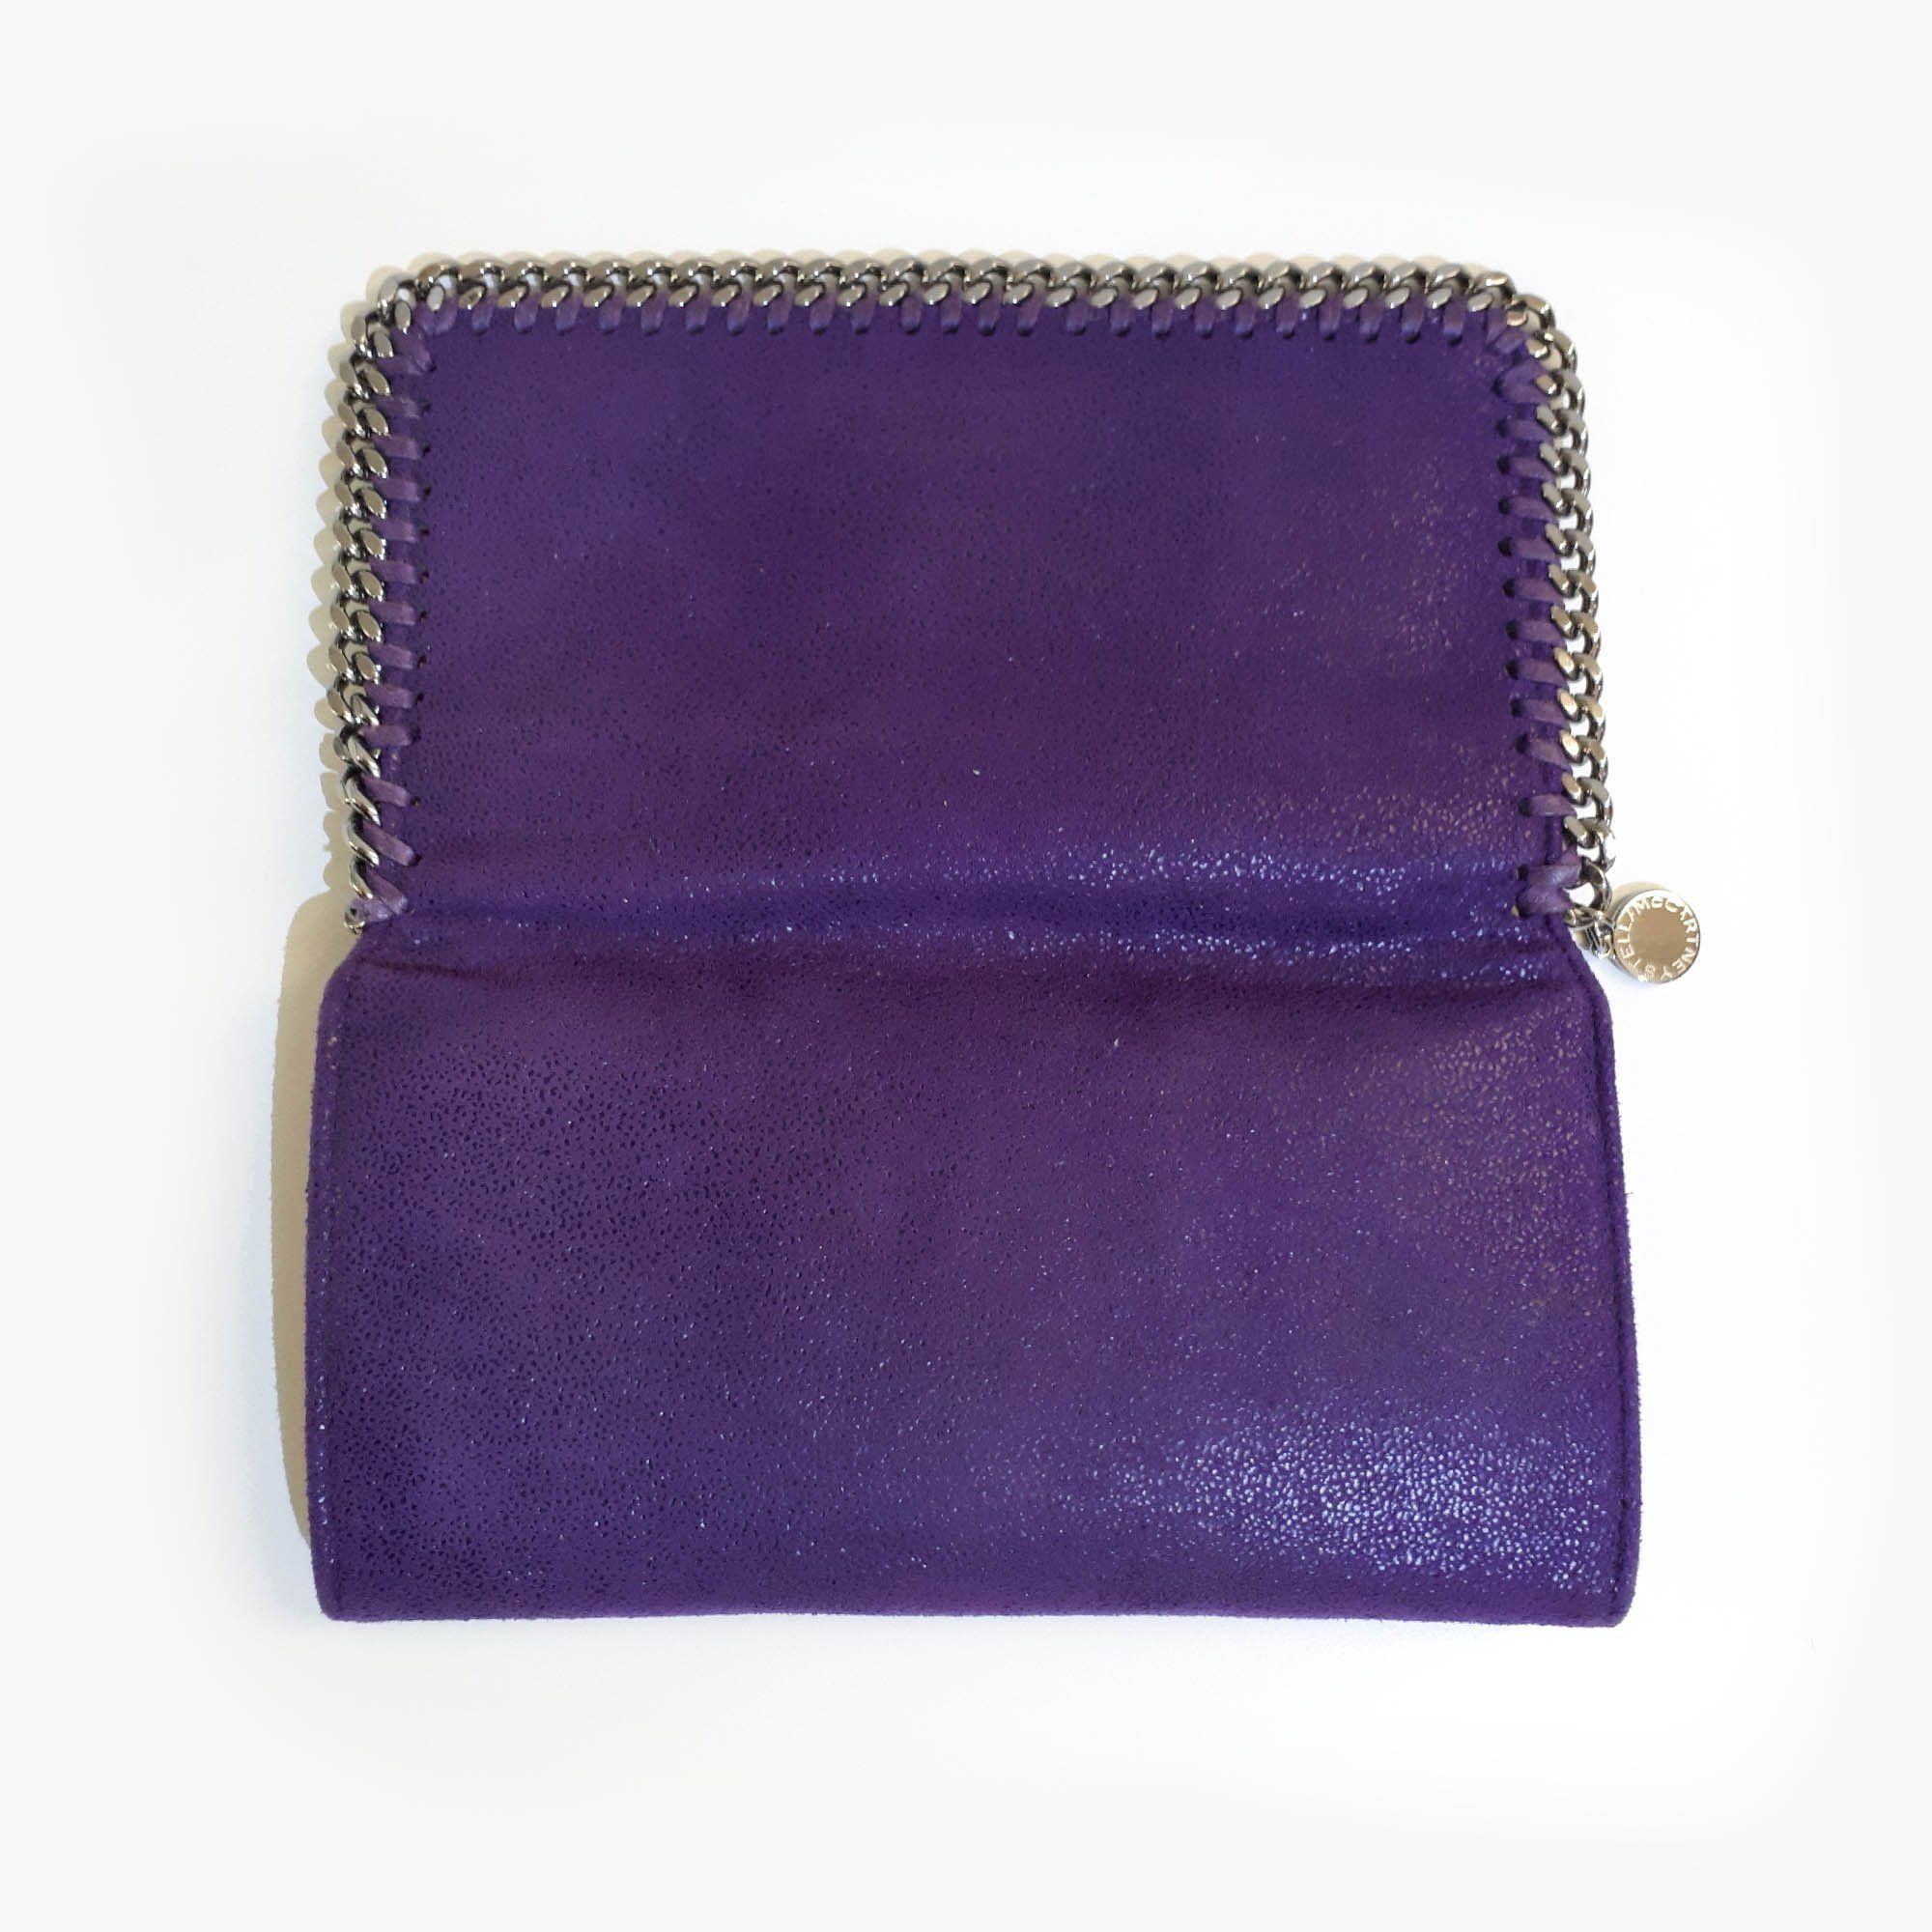 Stella McCartney Purple Falabella Continental Wallet